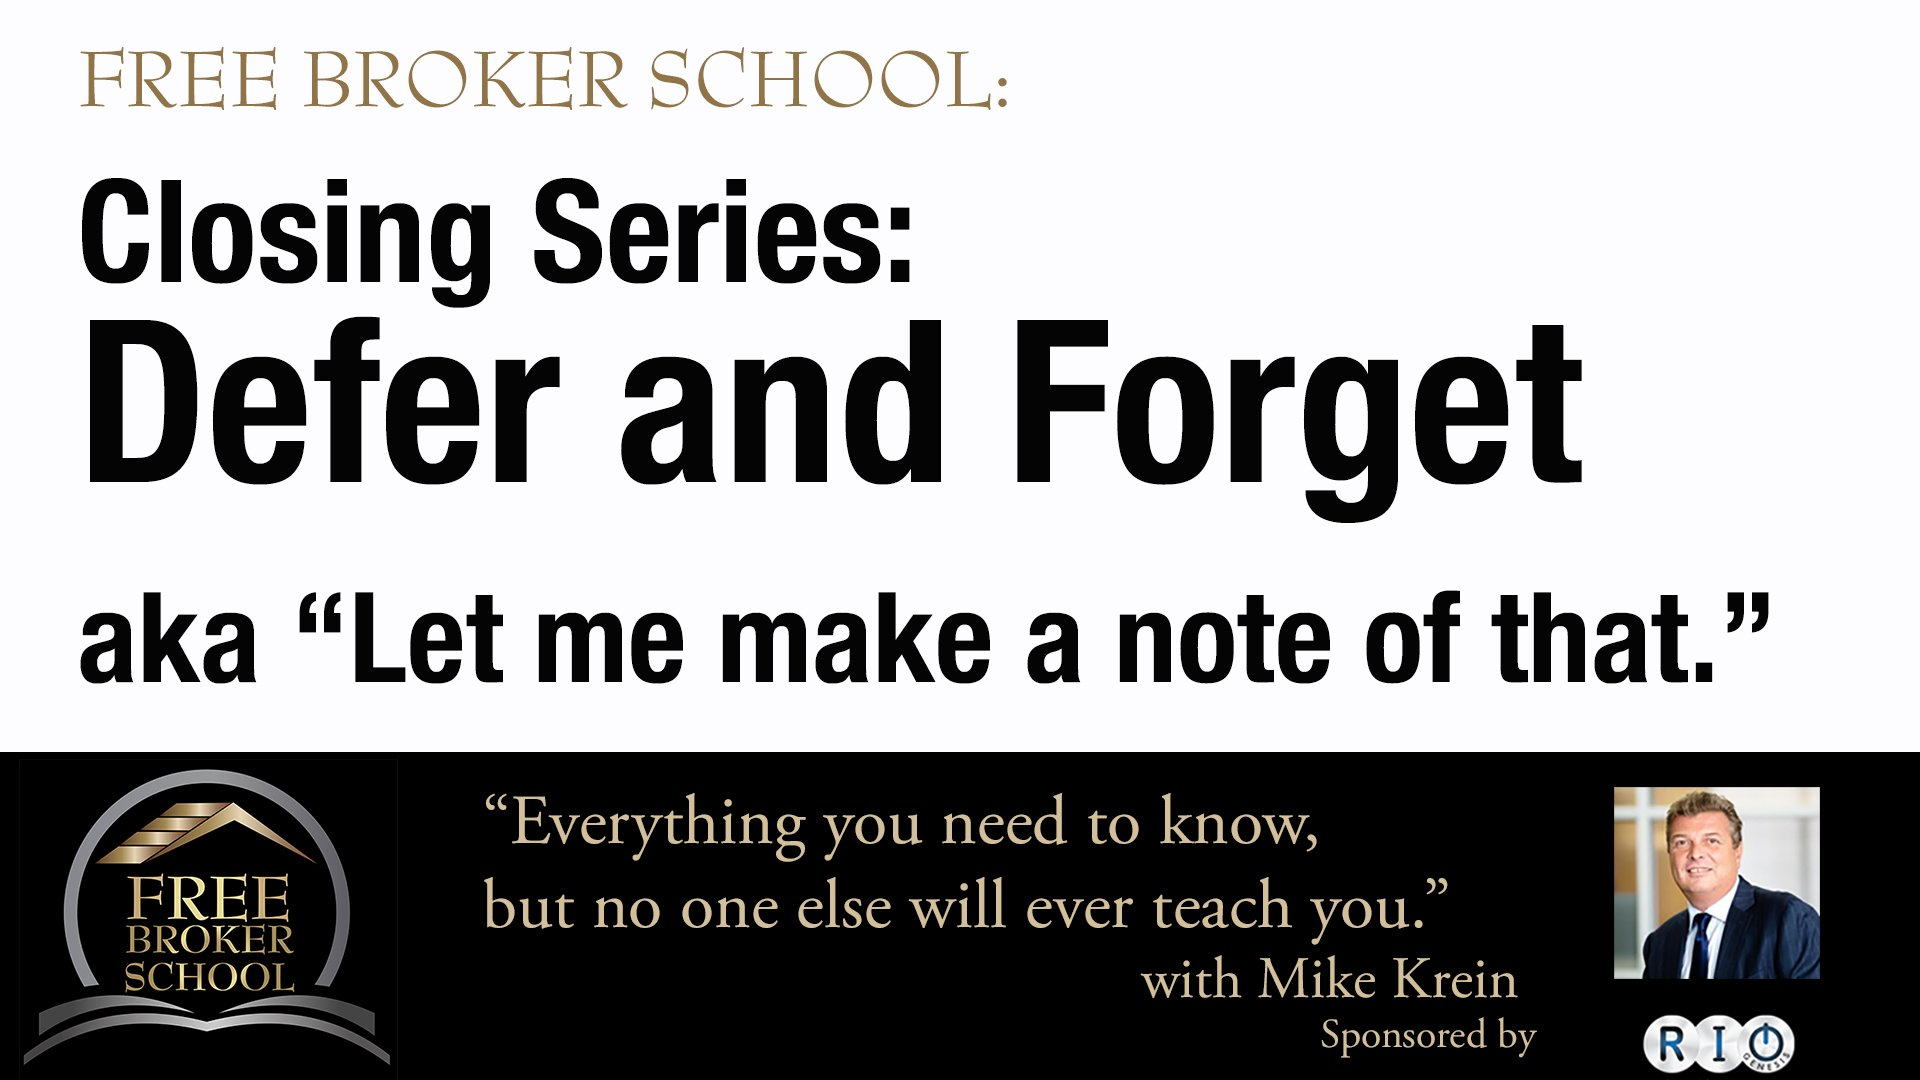 Sales Closing: Defer and Forget - Free Broker School